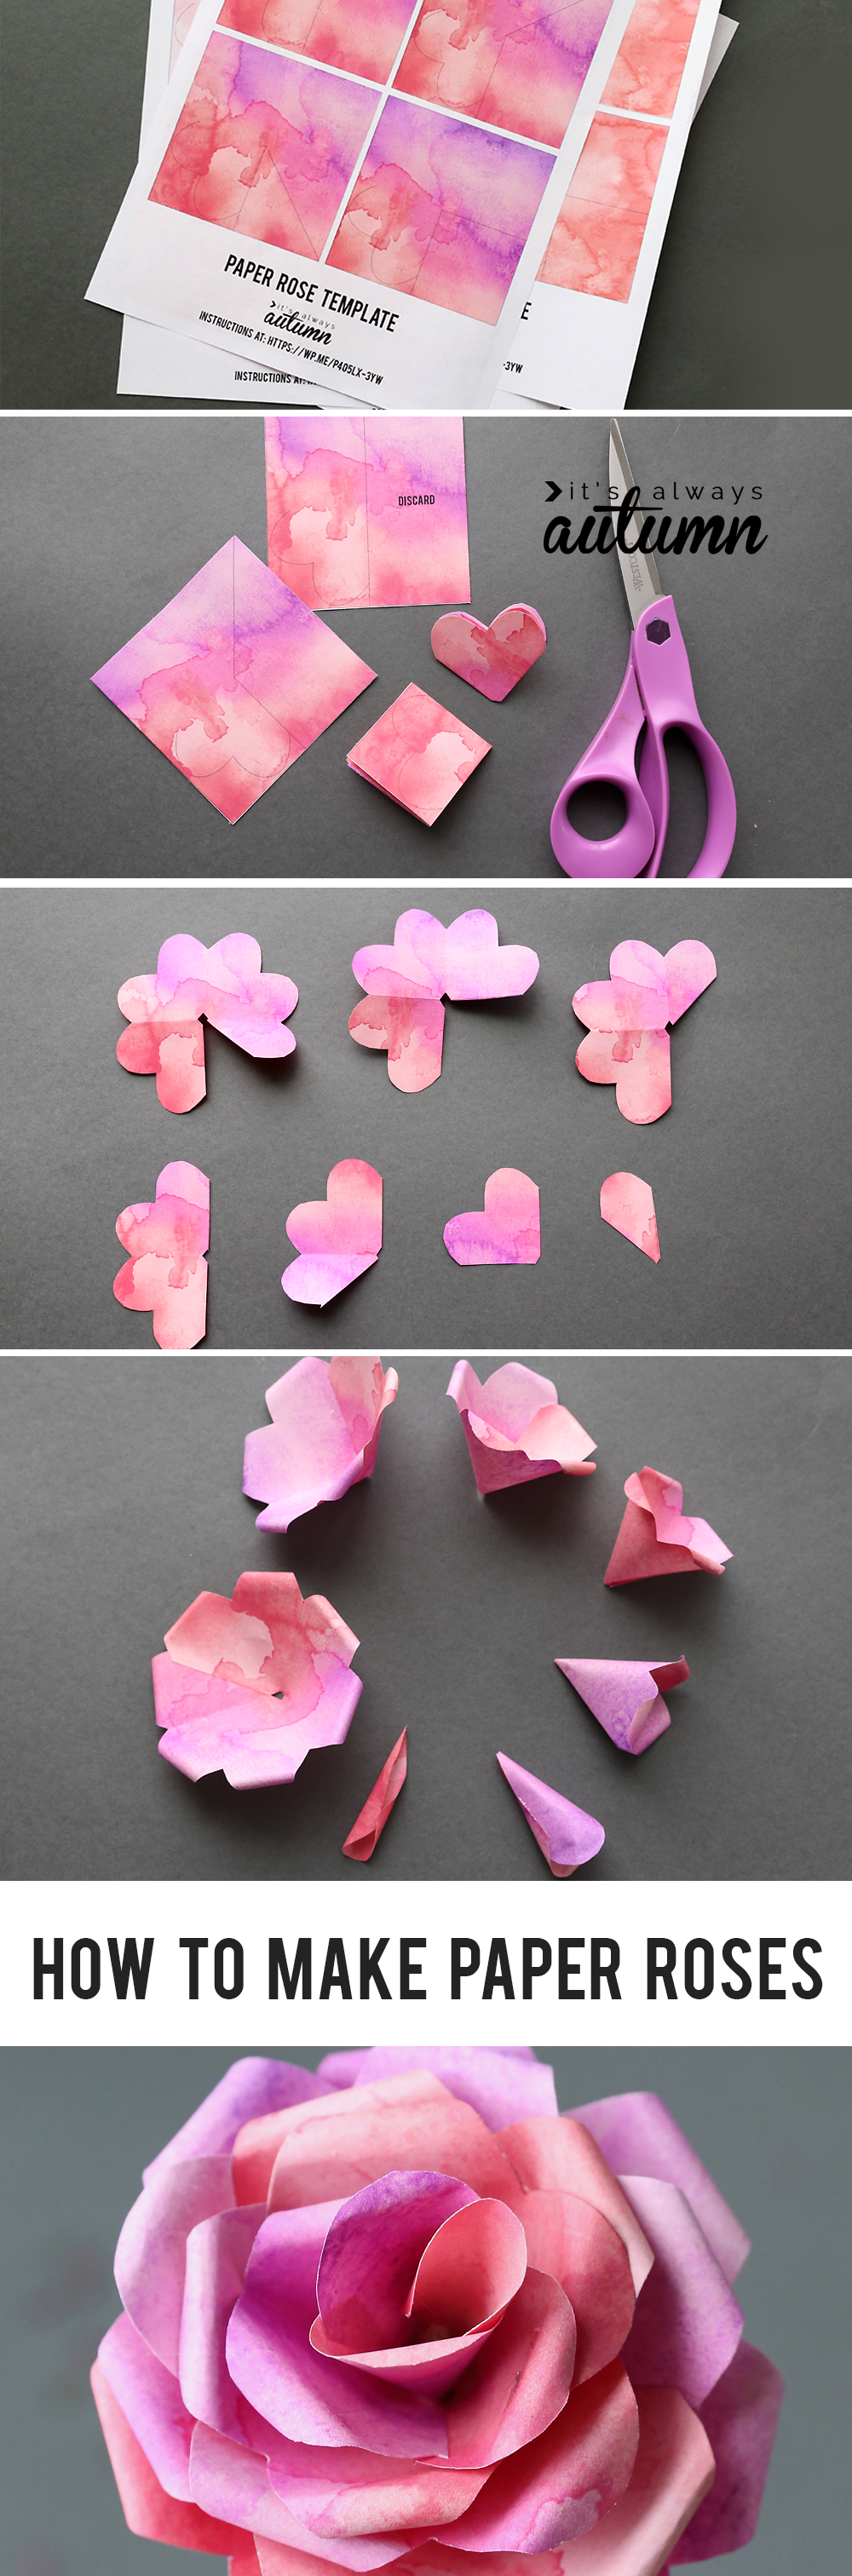 Make gorgeous paper roses with this free paper rose template its learn how to make paper roses with this beautiful paper rose template step by step mightylinksfo